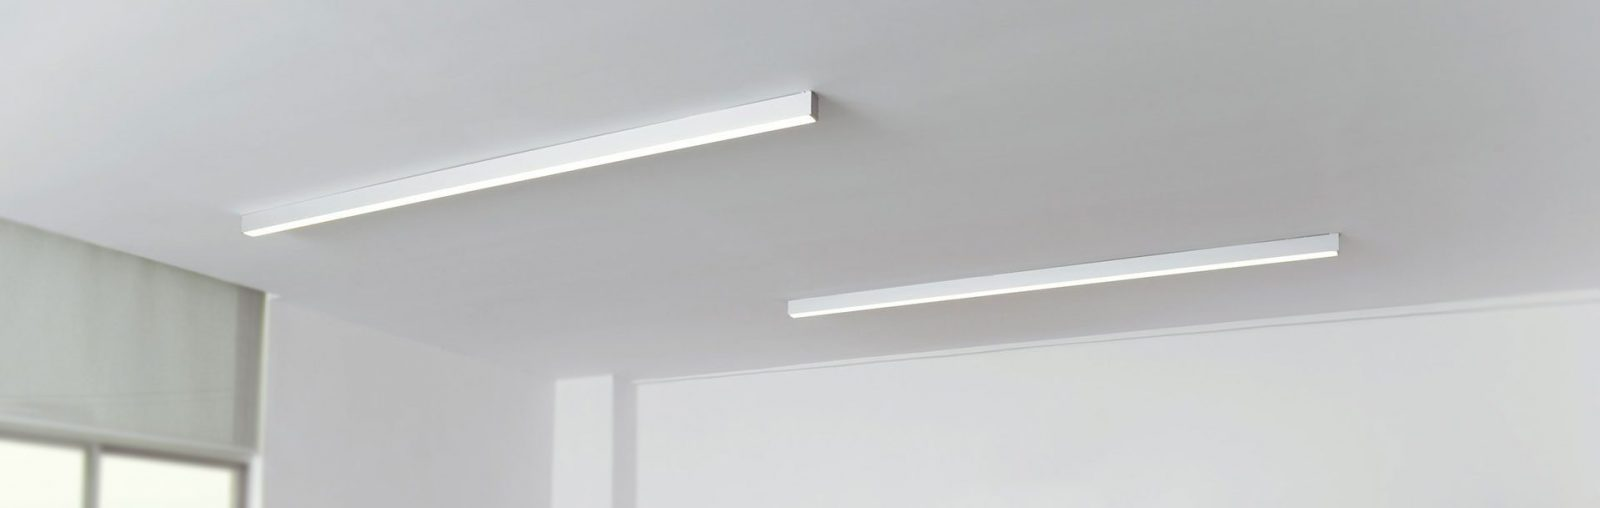 Barre LED a soffitto